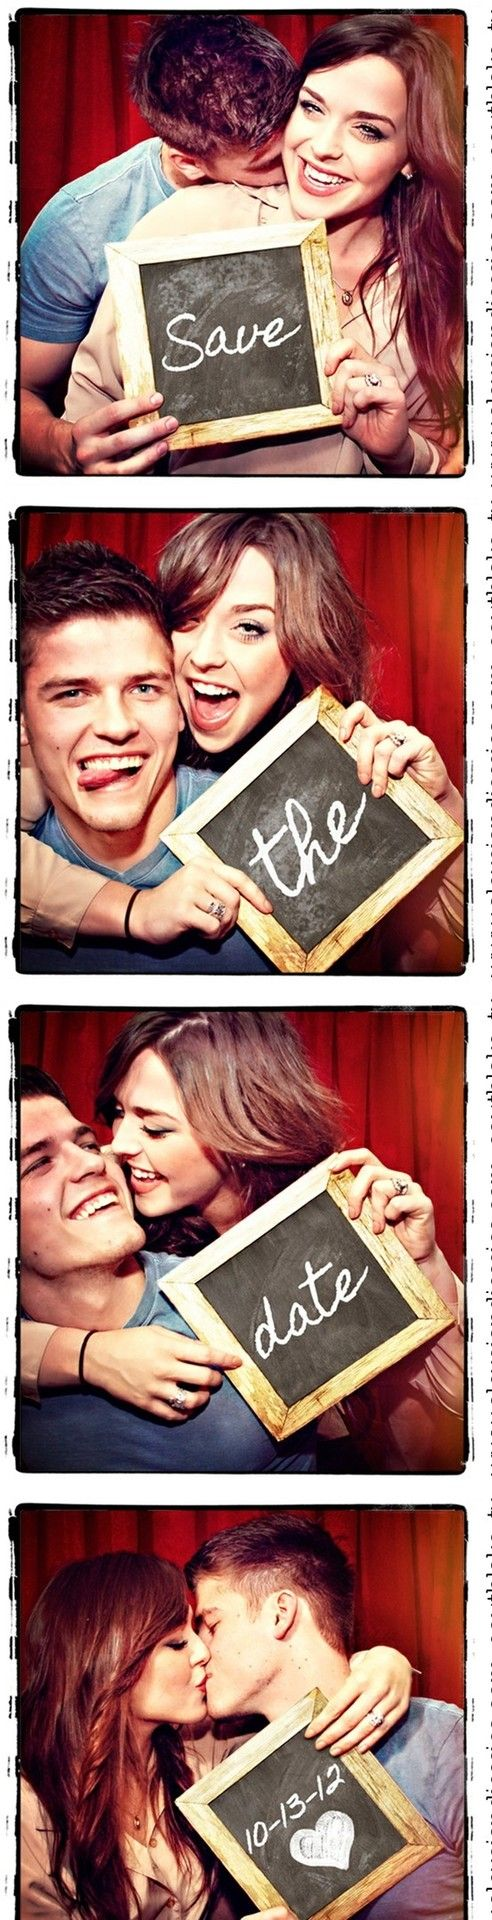 Photo booth announcement: Photos Booths, Save The Date Ideas, Engagement Photos, Dates, Wedding Announcements, Cute Ideas, Photobooth, Photo Booths, Engagement Picture